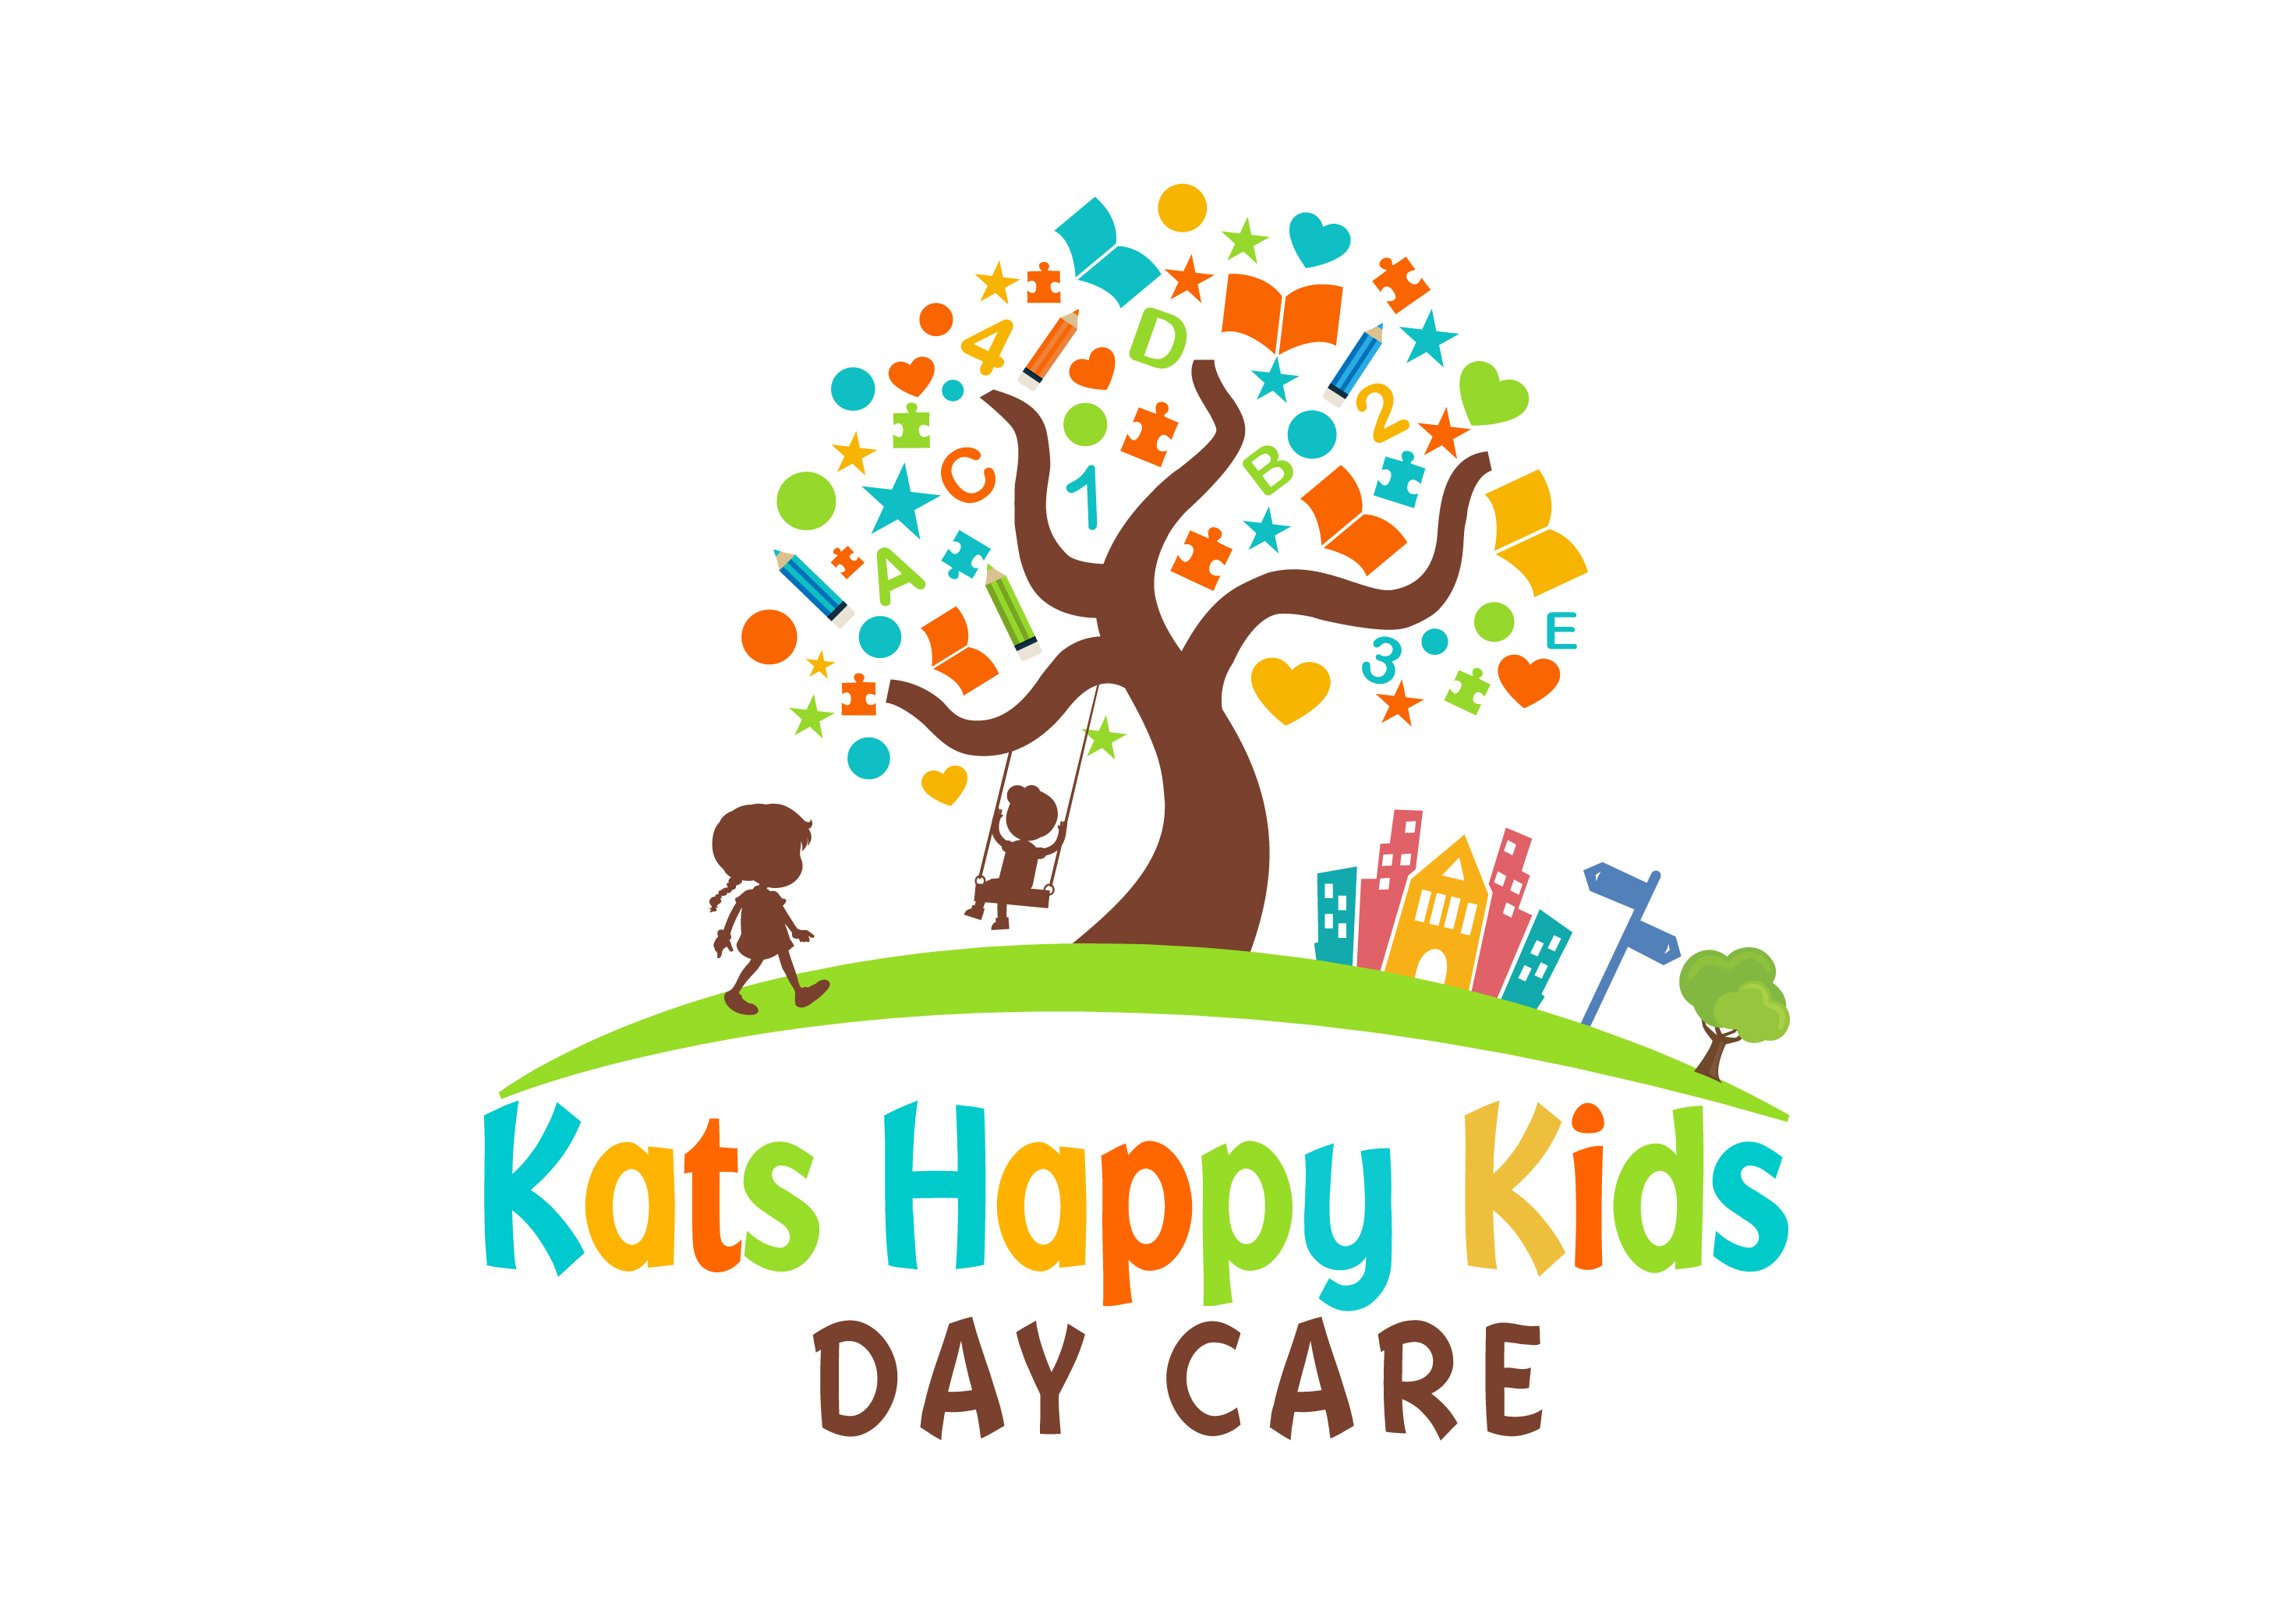 Kats Happy Kids Daycare Corp